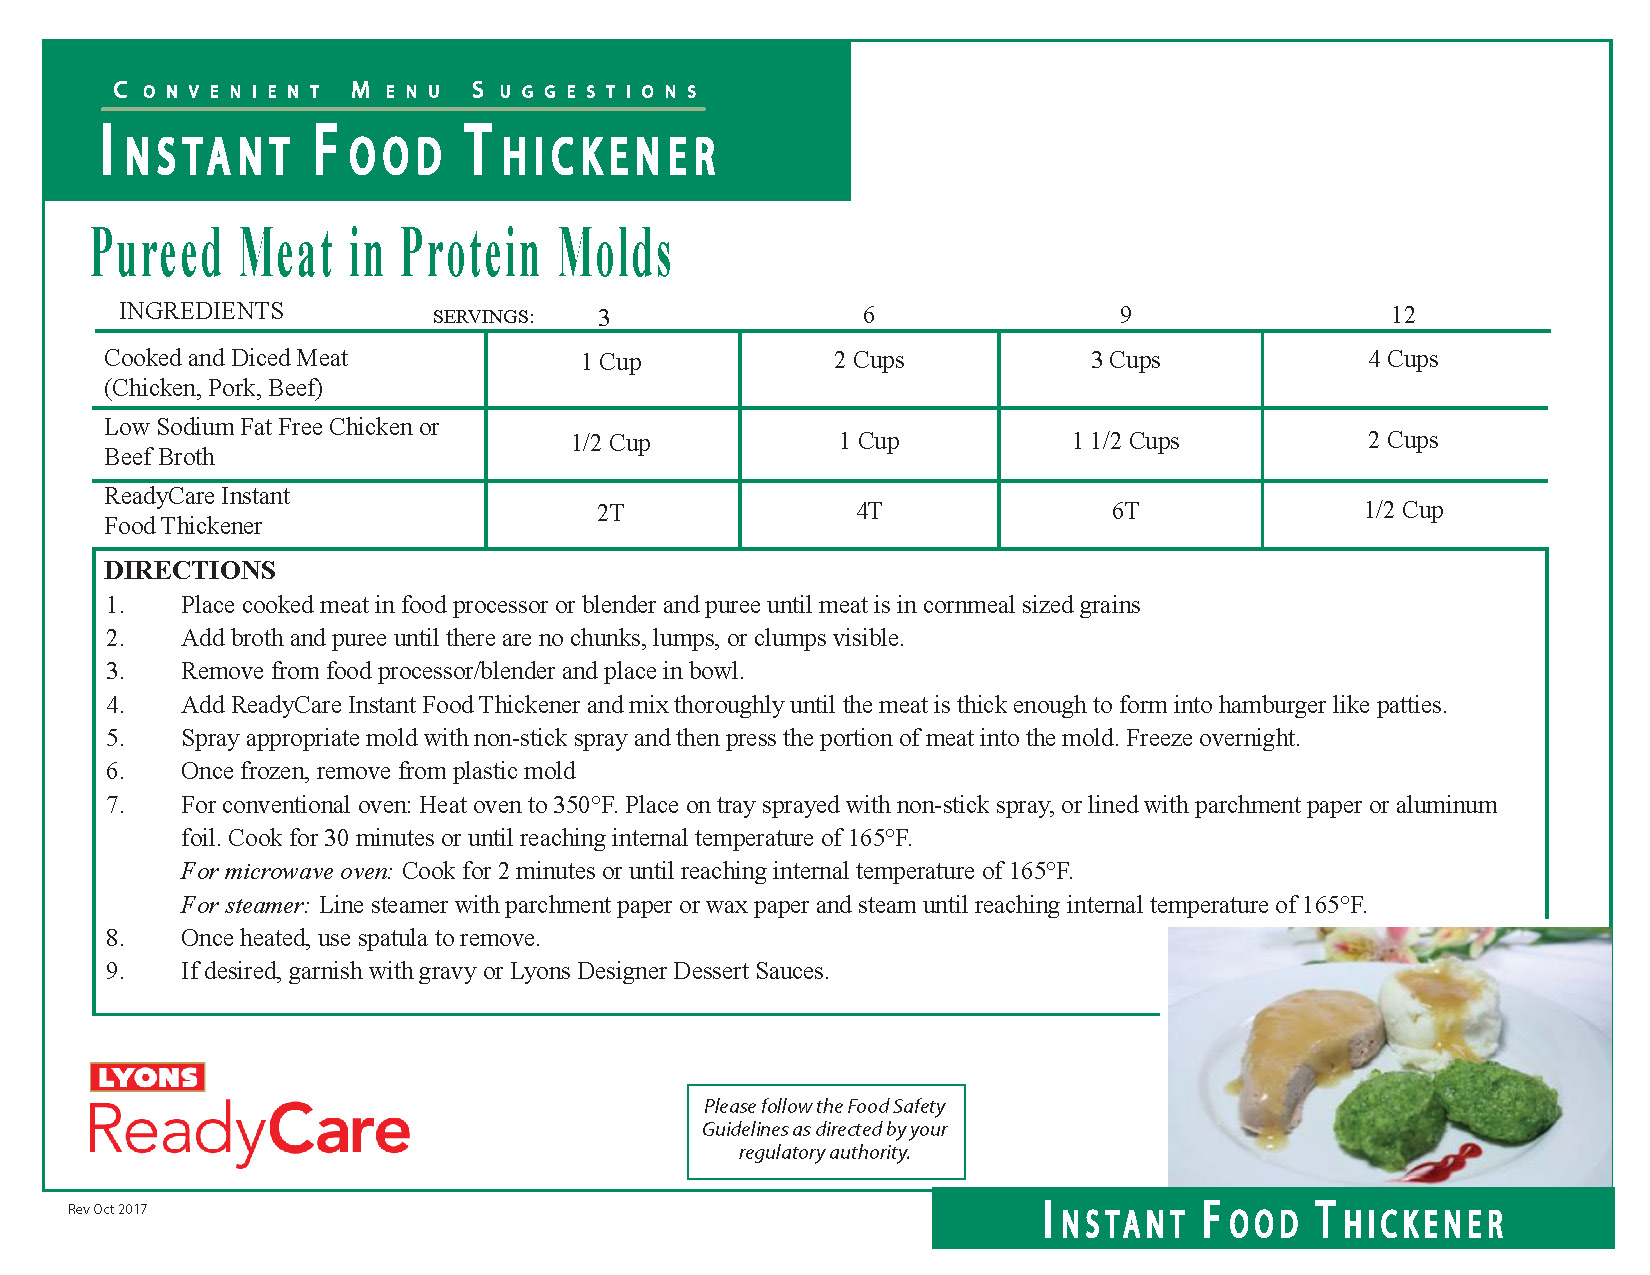 Pureed Meat in Protein Molds